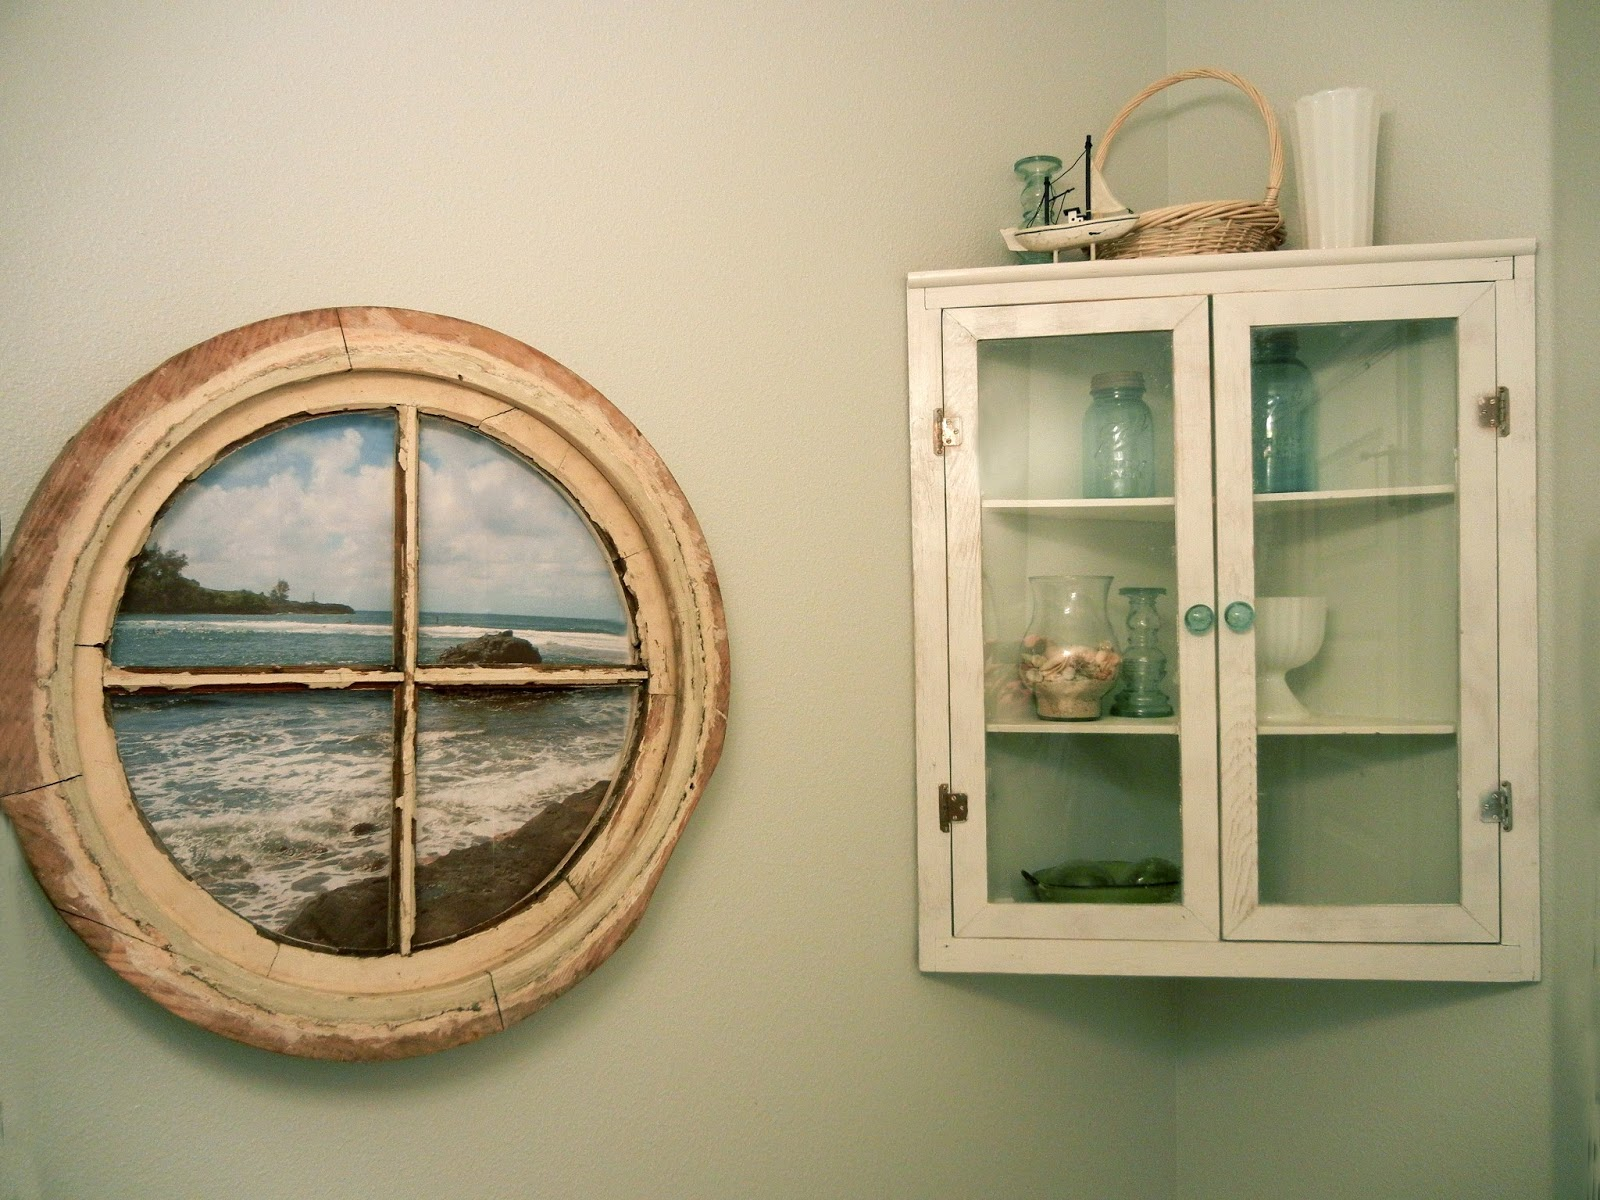 Photo Display Ideas: Windows into Picture Frames